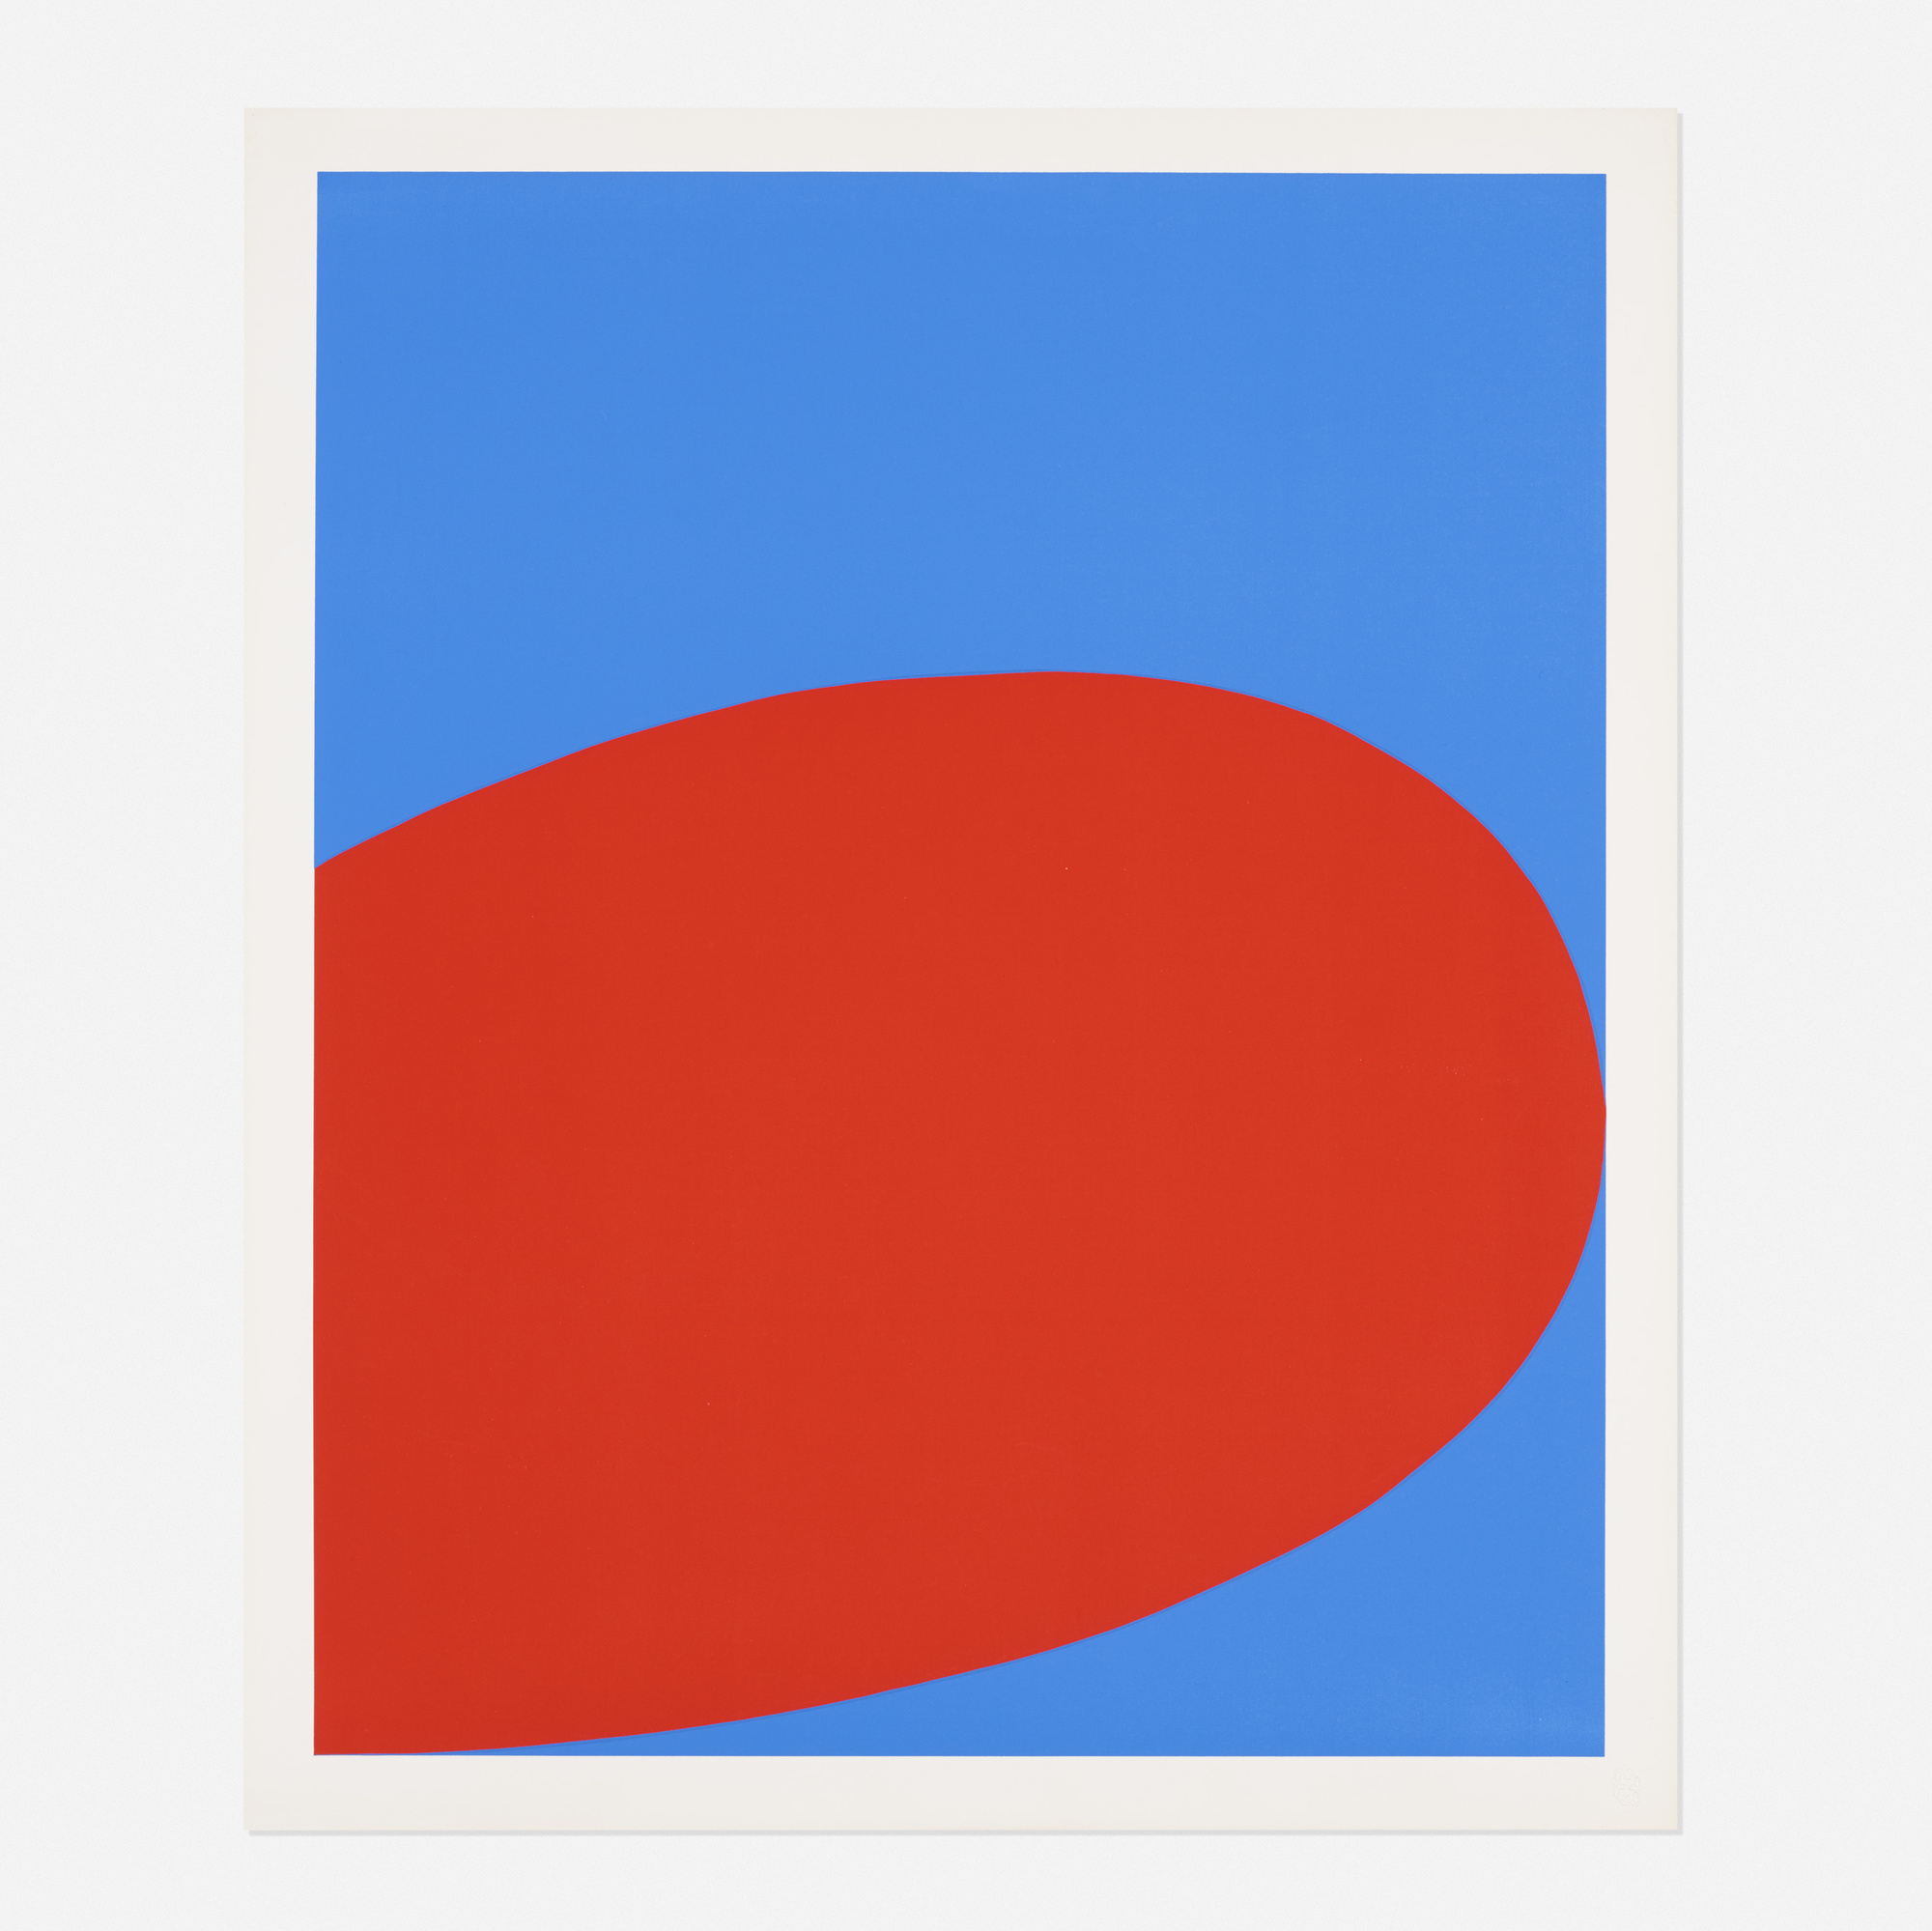 175: Ellsworth Kelly / Red Blue (from the Ten Works x Ten Painters portfolio) (1 of 1)